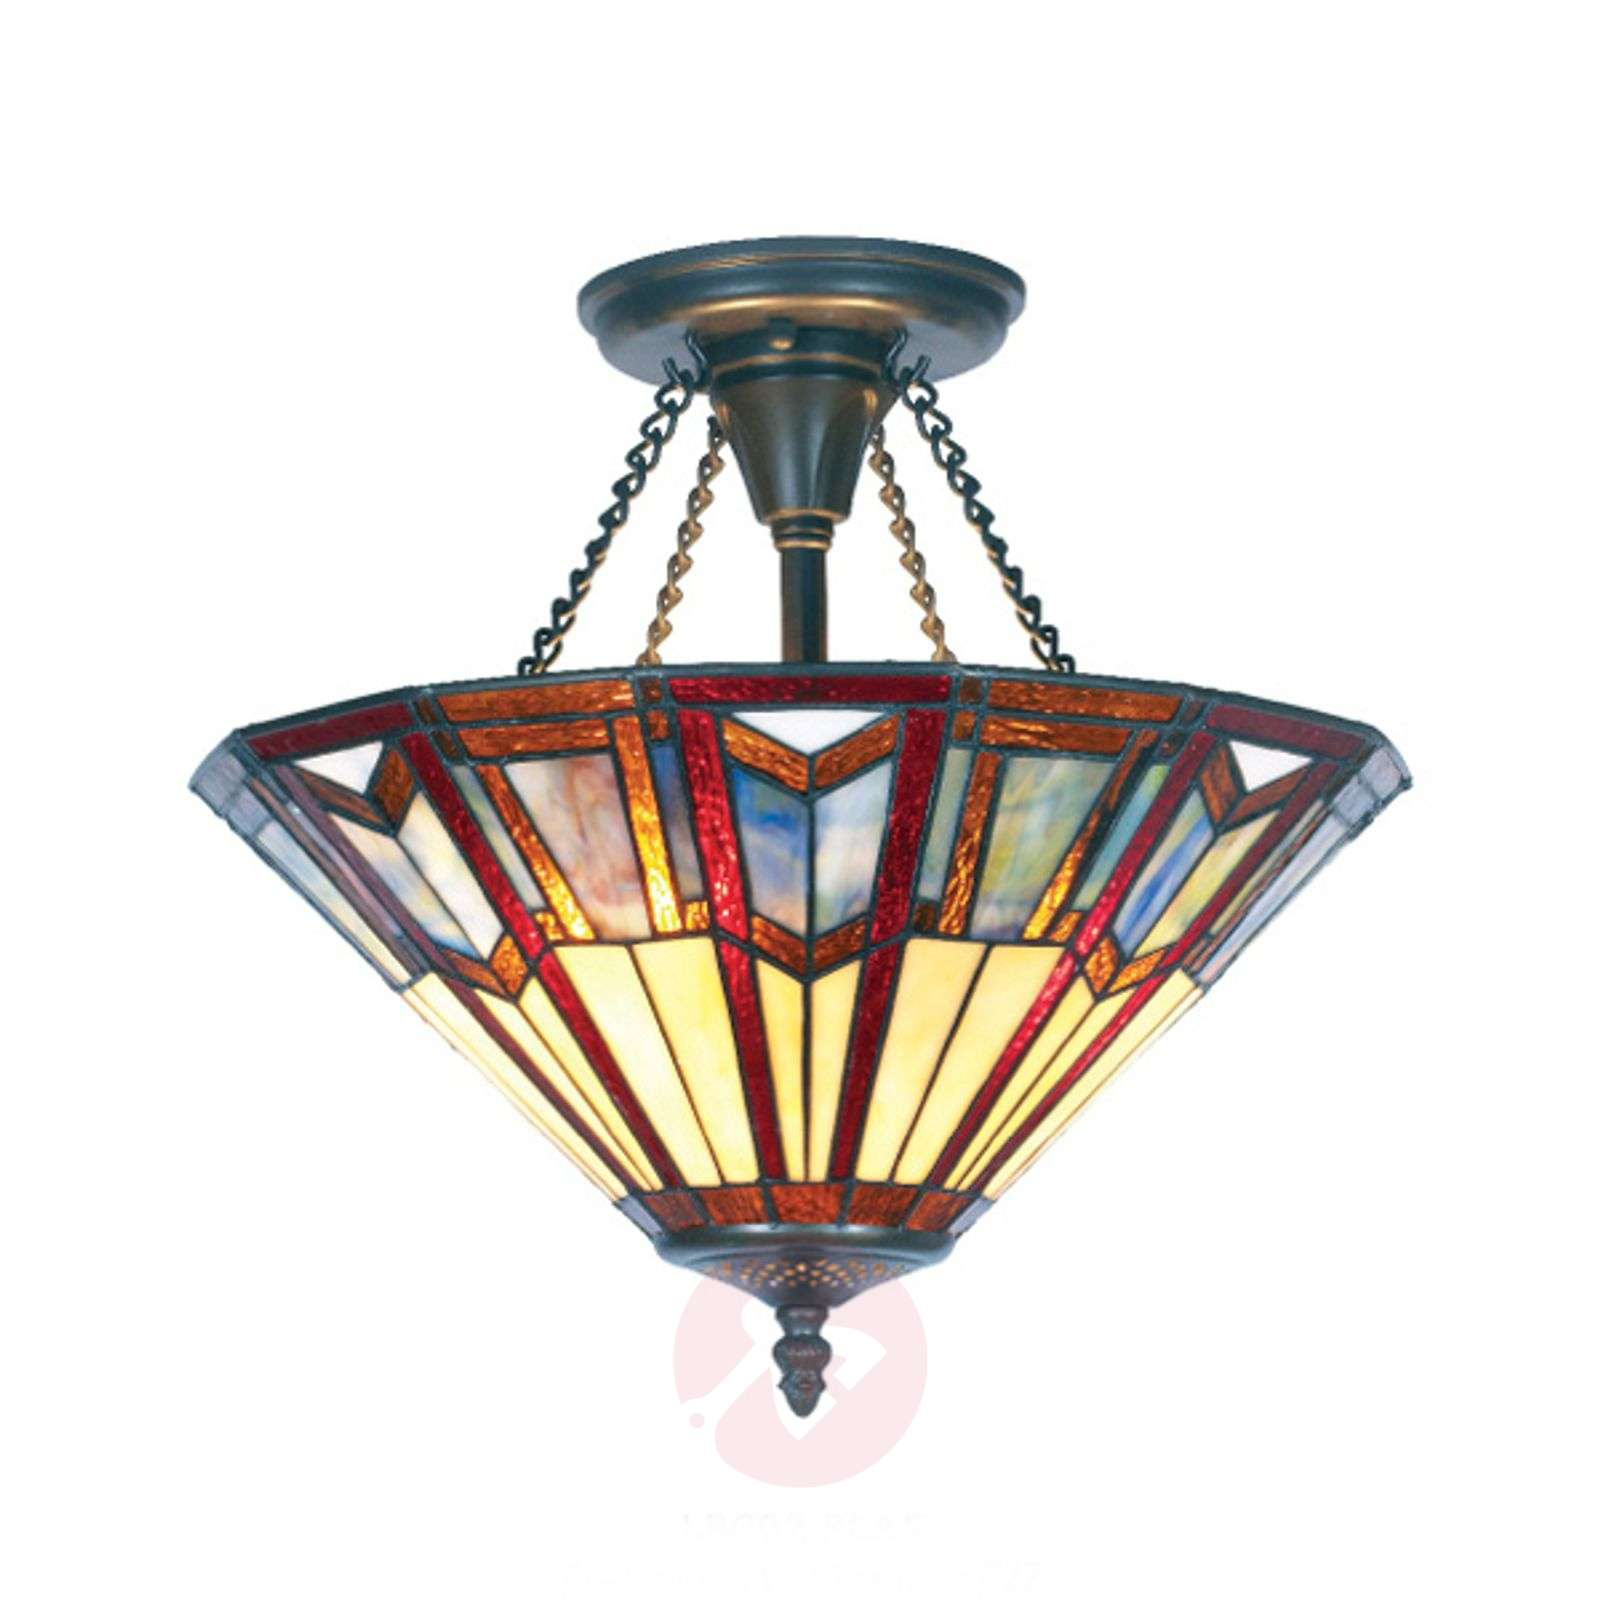 LILLIE Tiffany-style ceiling light-1032190-01